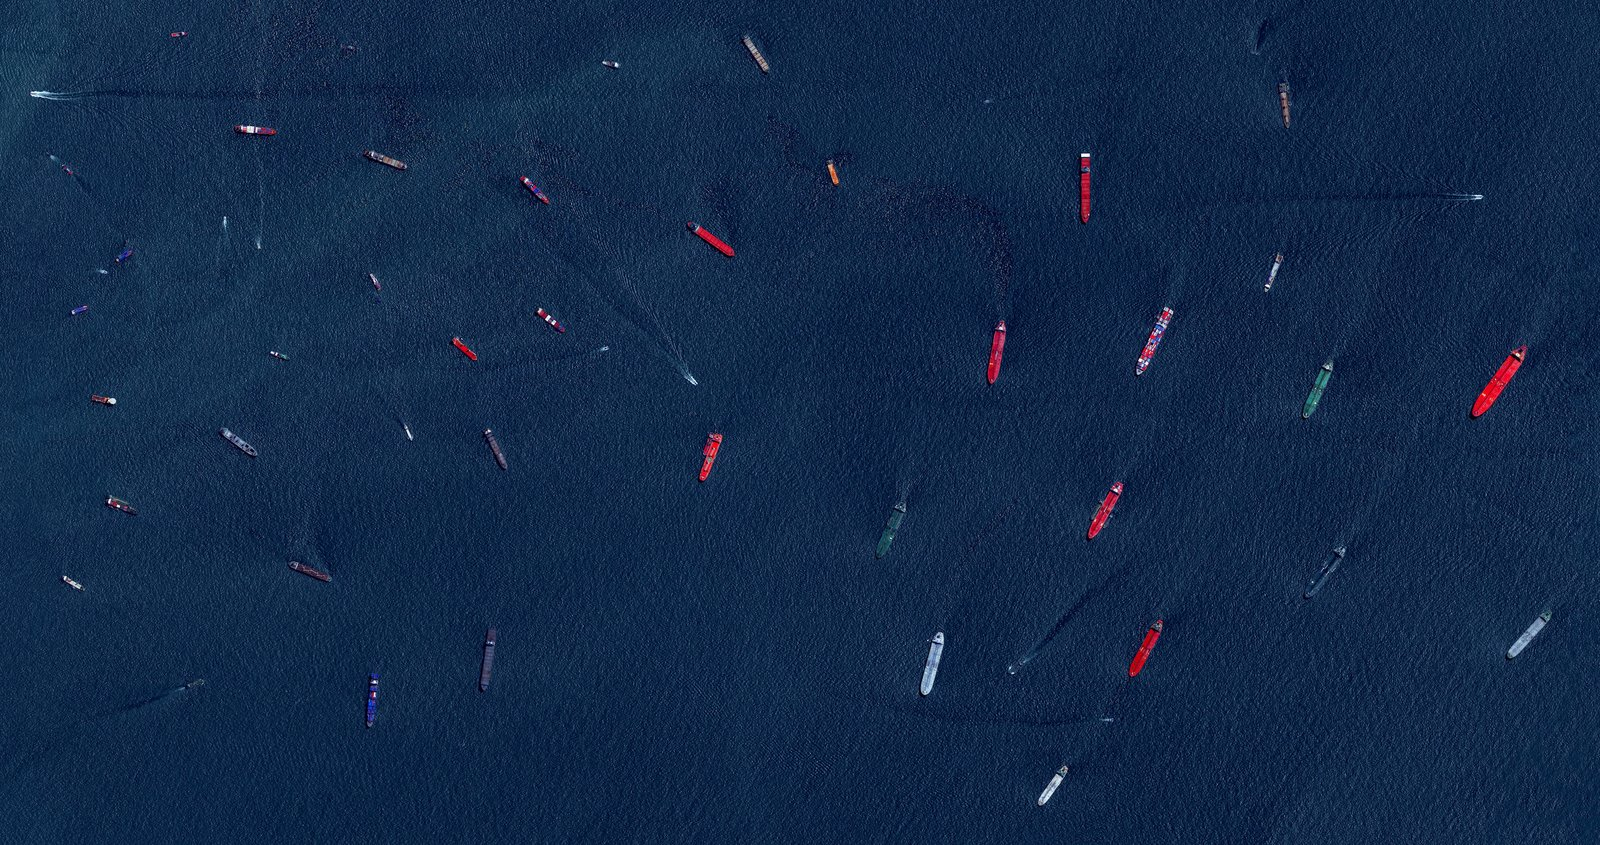 The Port of Singapore ships a fifth of the world's cargo containers, making it the world's second busiest port. Reprinted with permission from Overview by Benjamin Grant, copyright (c) 2016. Published by Amphoto Books, a division of Penguin Random House, Inc.   Images (c) 2016 by DigitalGlobe, Inc.   Ever Wondered About the View from Space? by Aileen Kwun